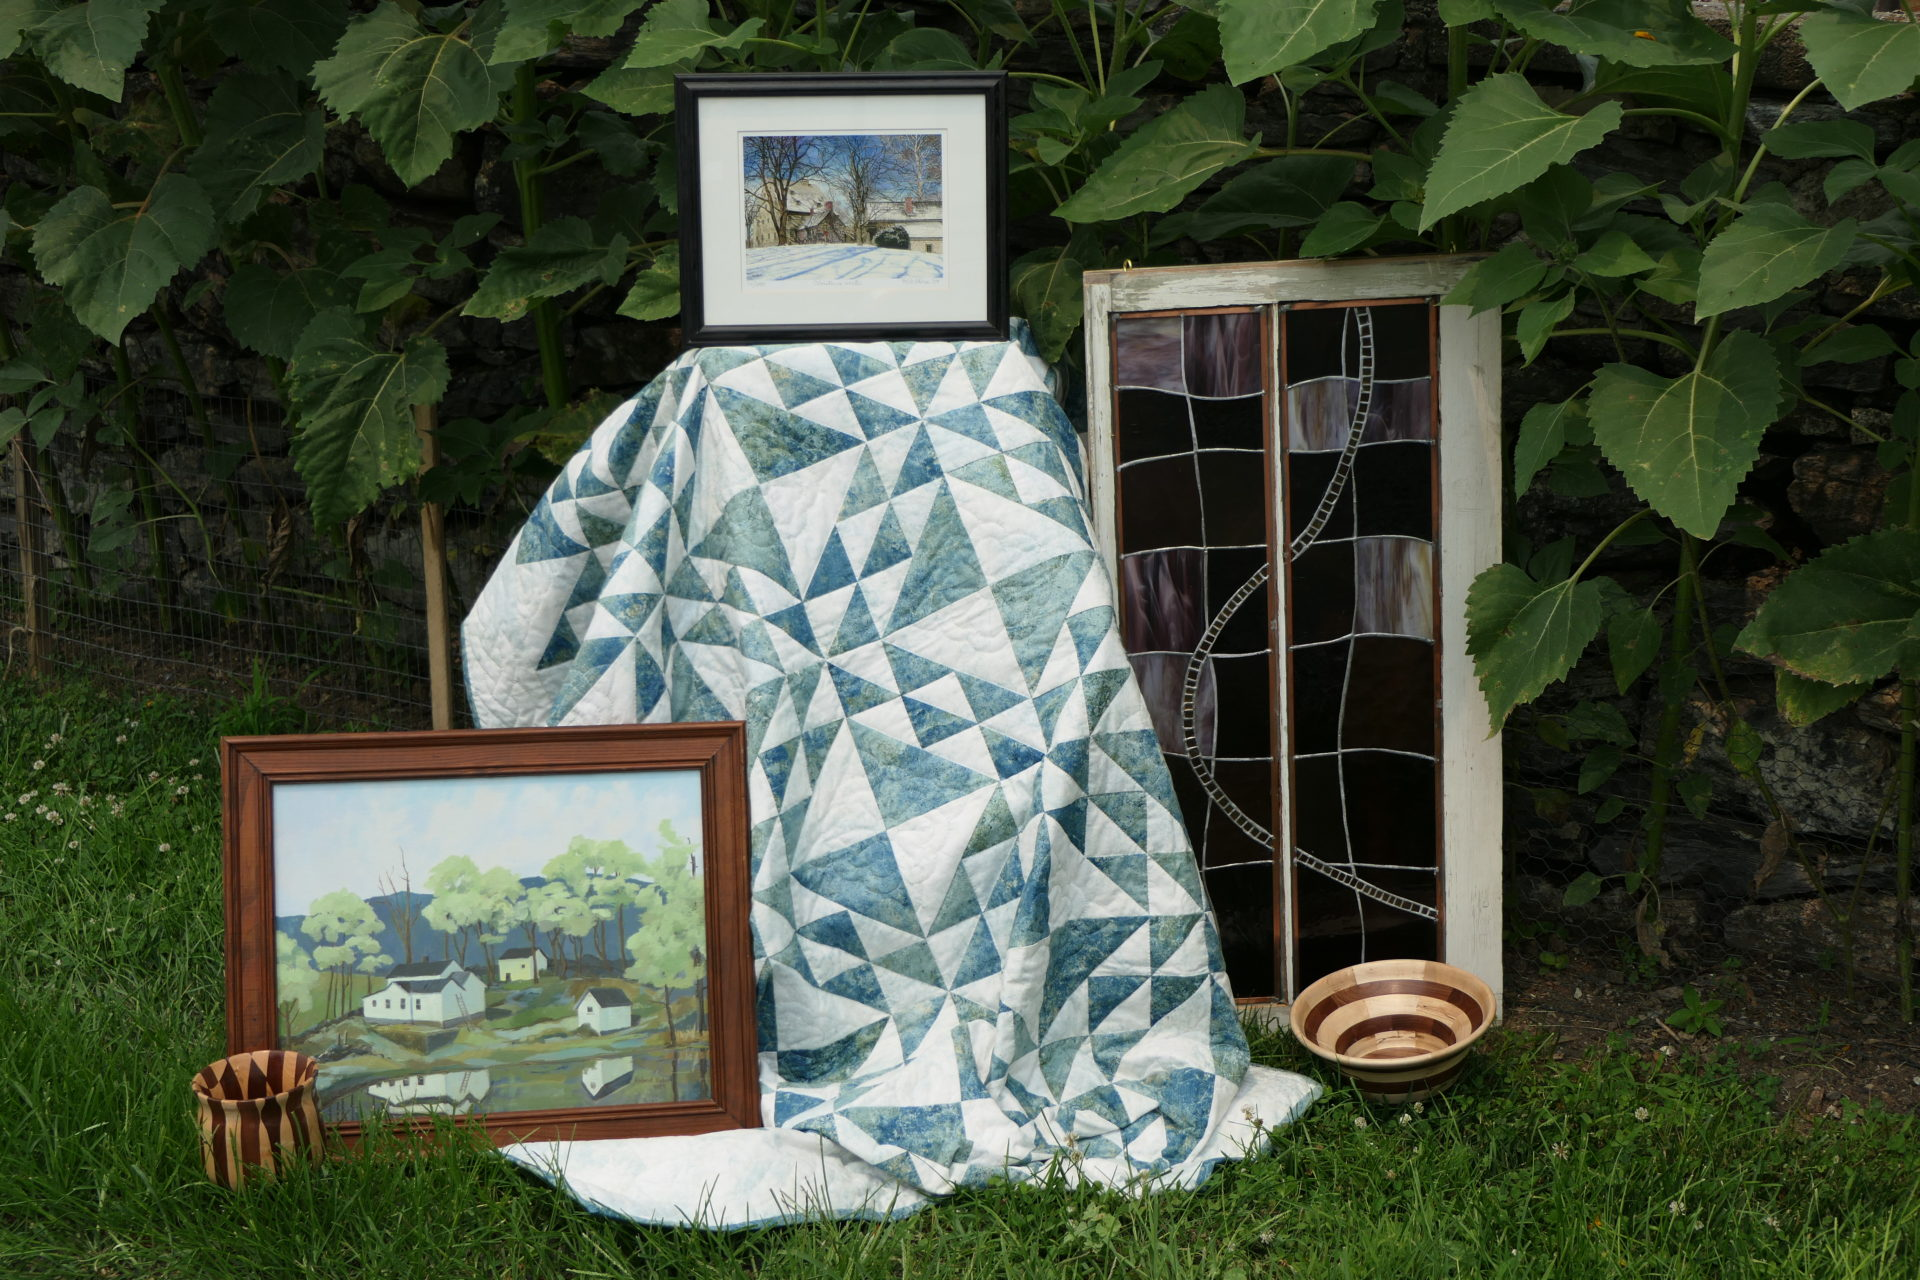 Quilt and artwork